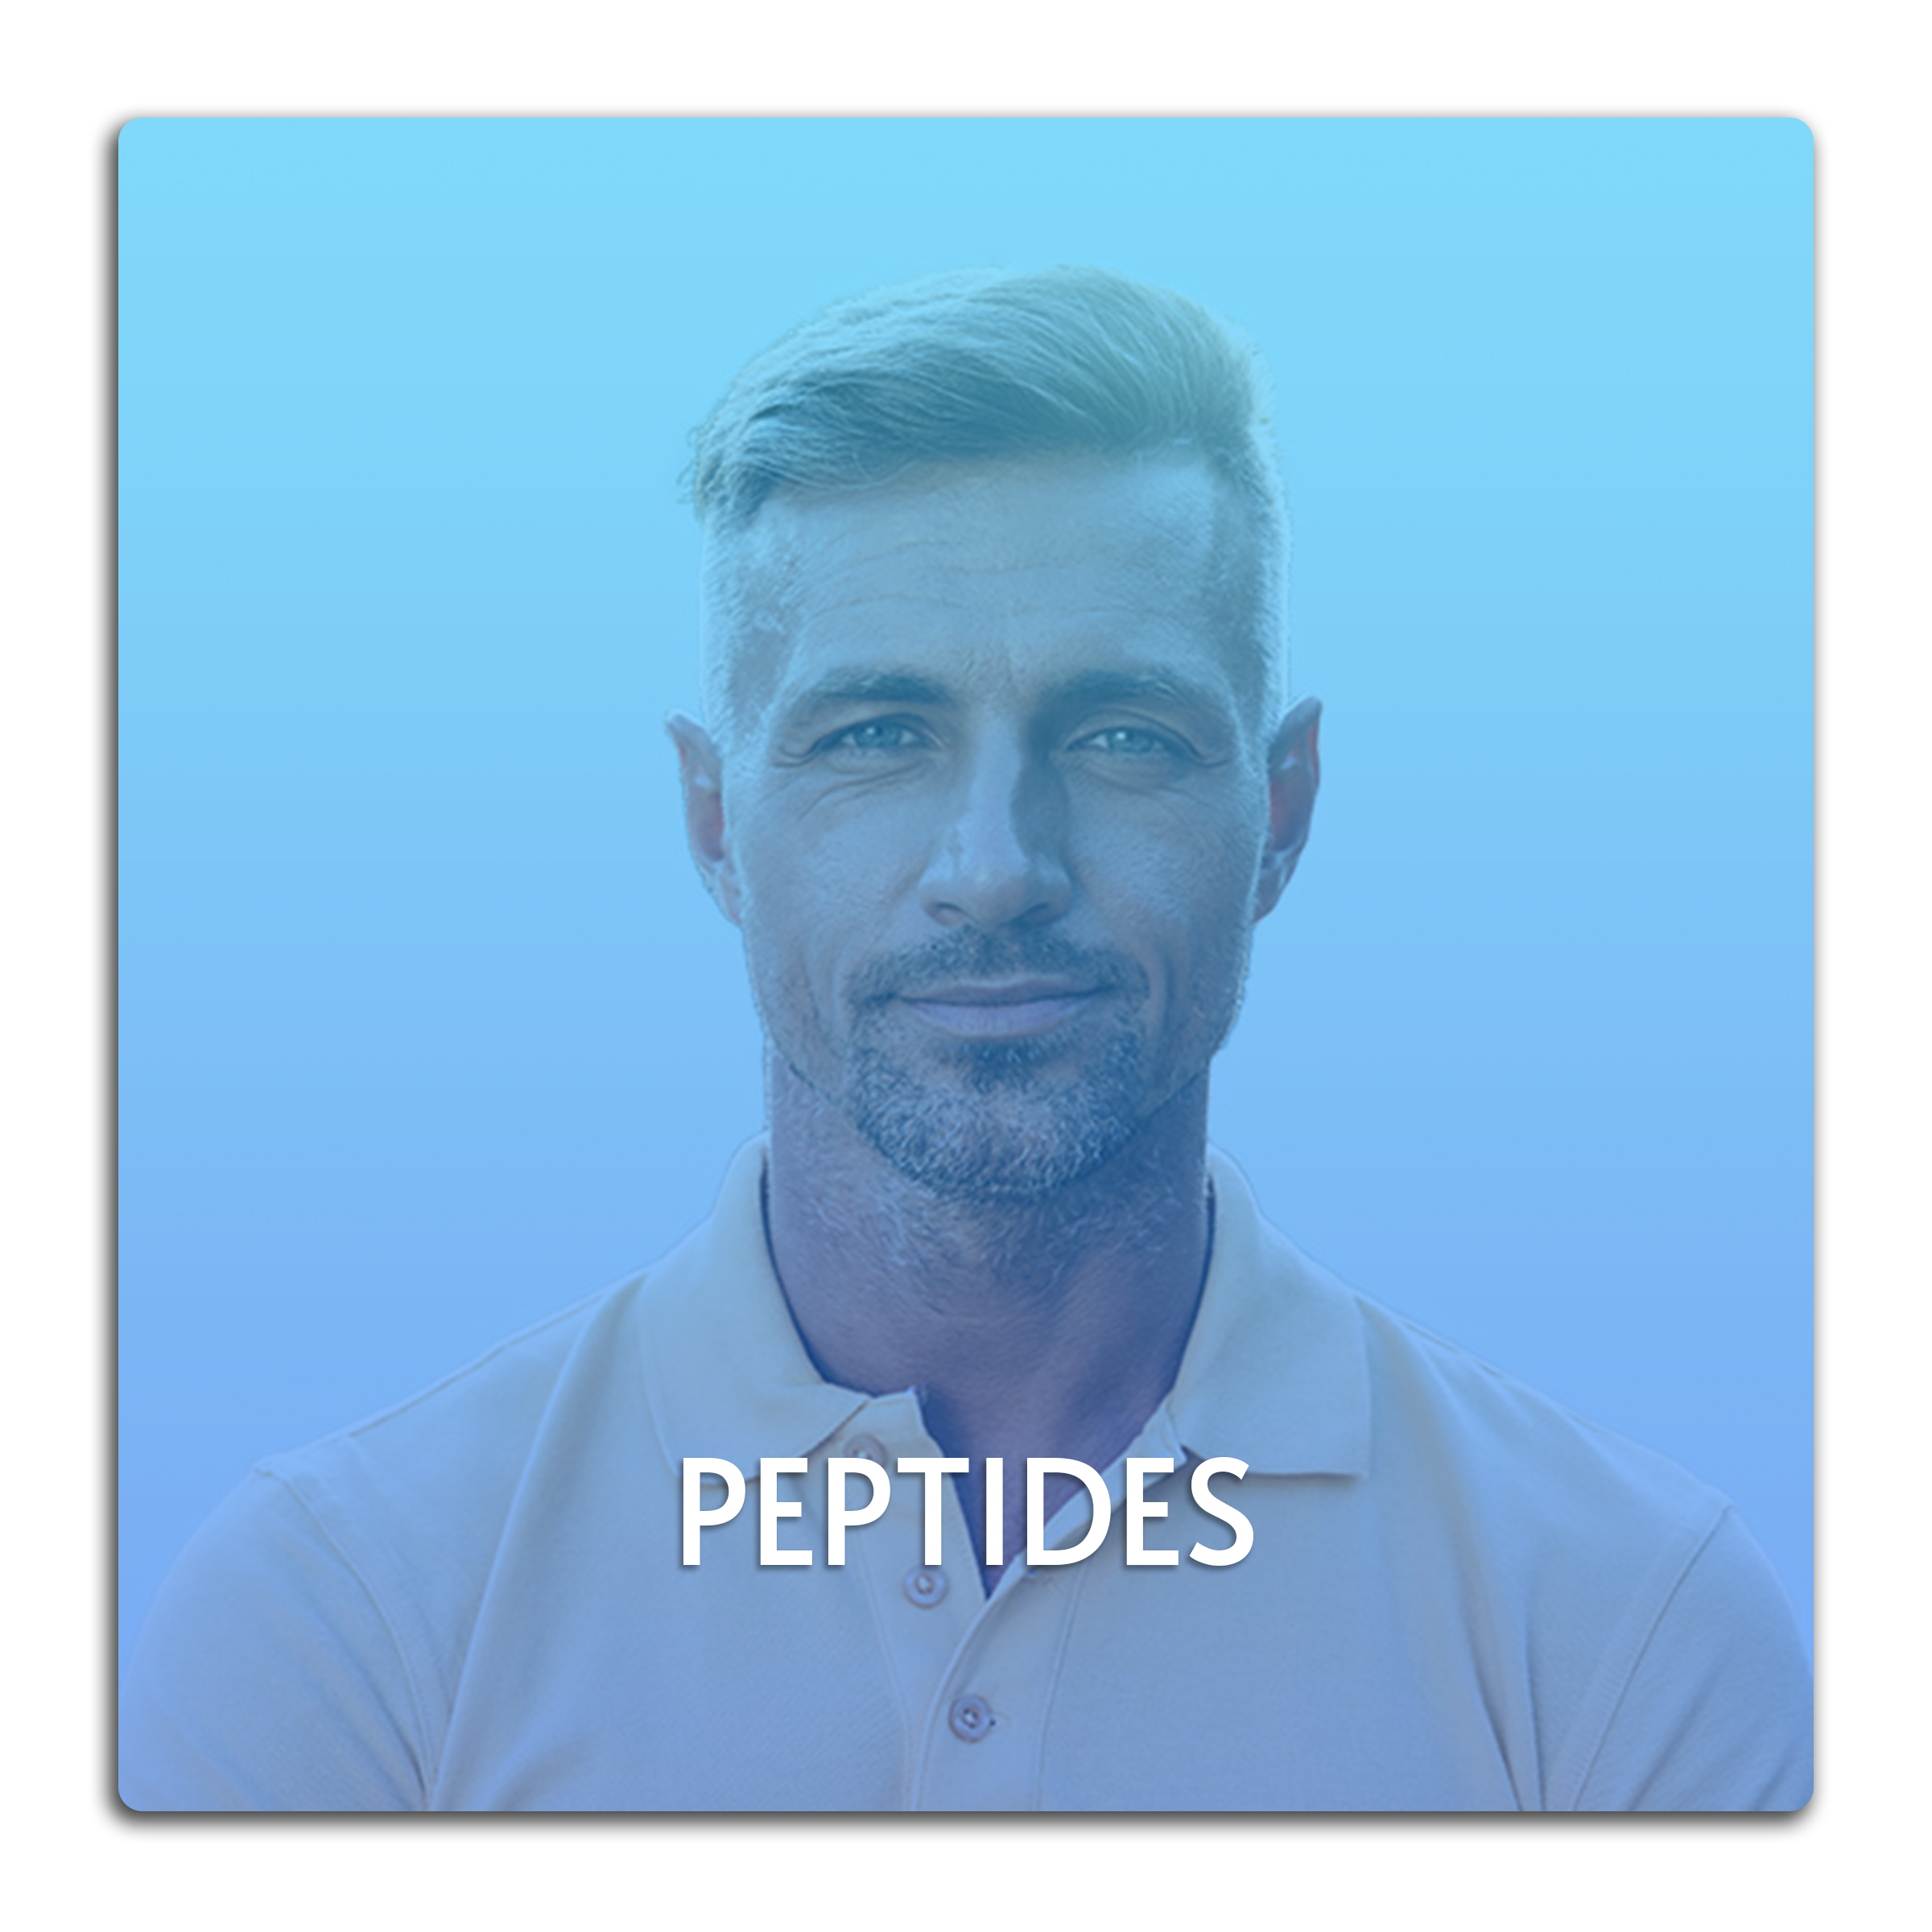 This image is a button linked to the Peptides page